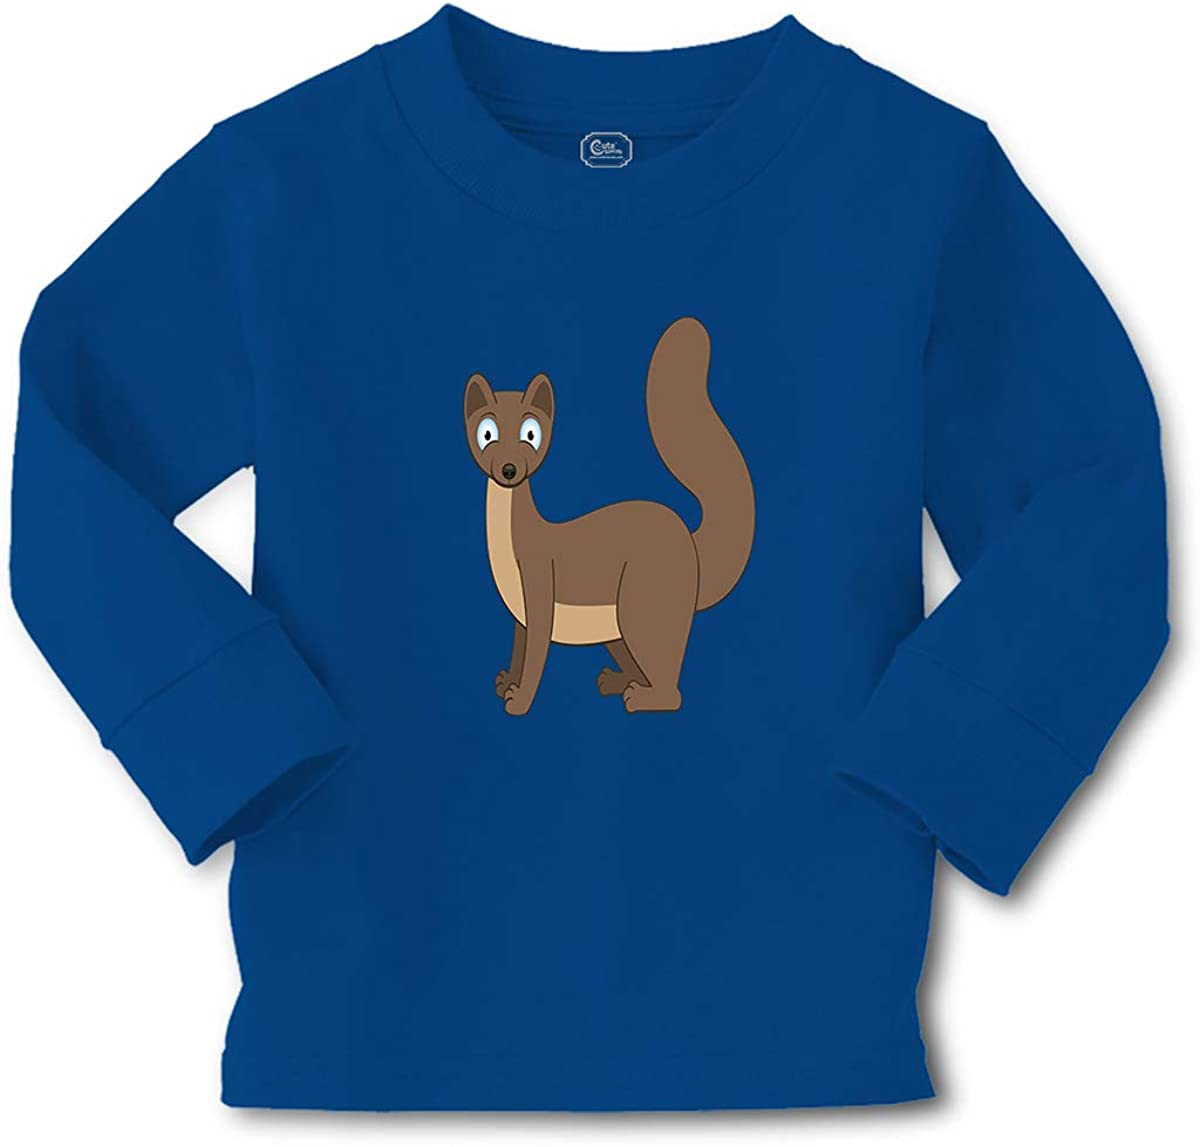 Kids Long Sleeve T Shirt Little Animal Similar to Squirrel Funny Humor Cotton